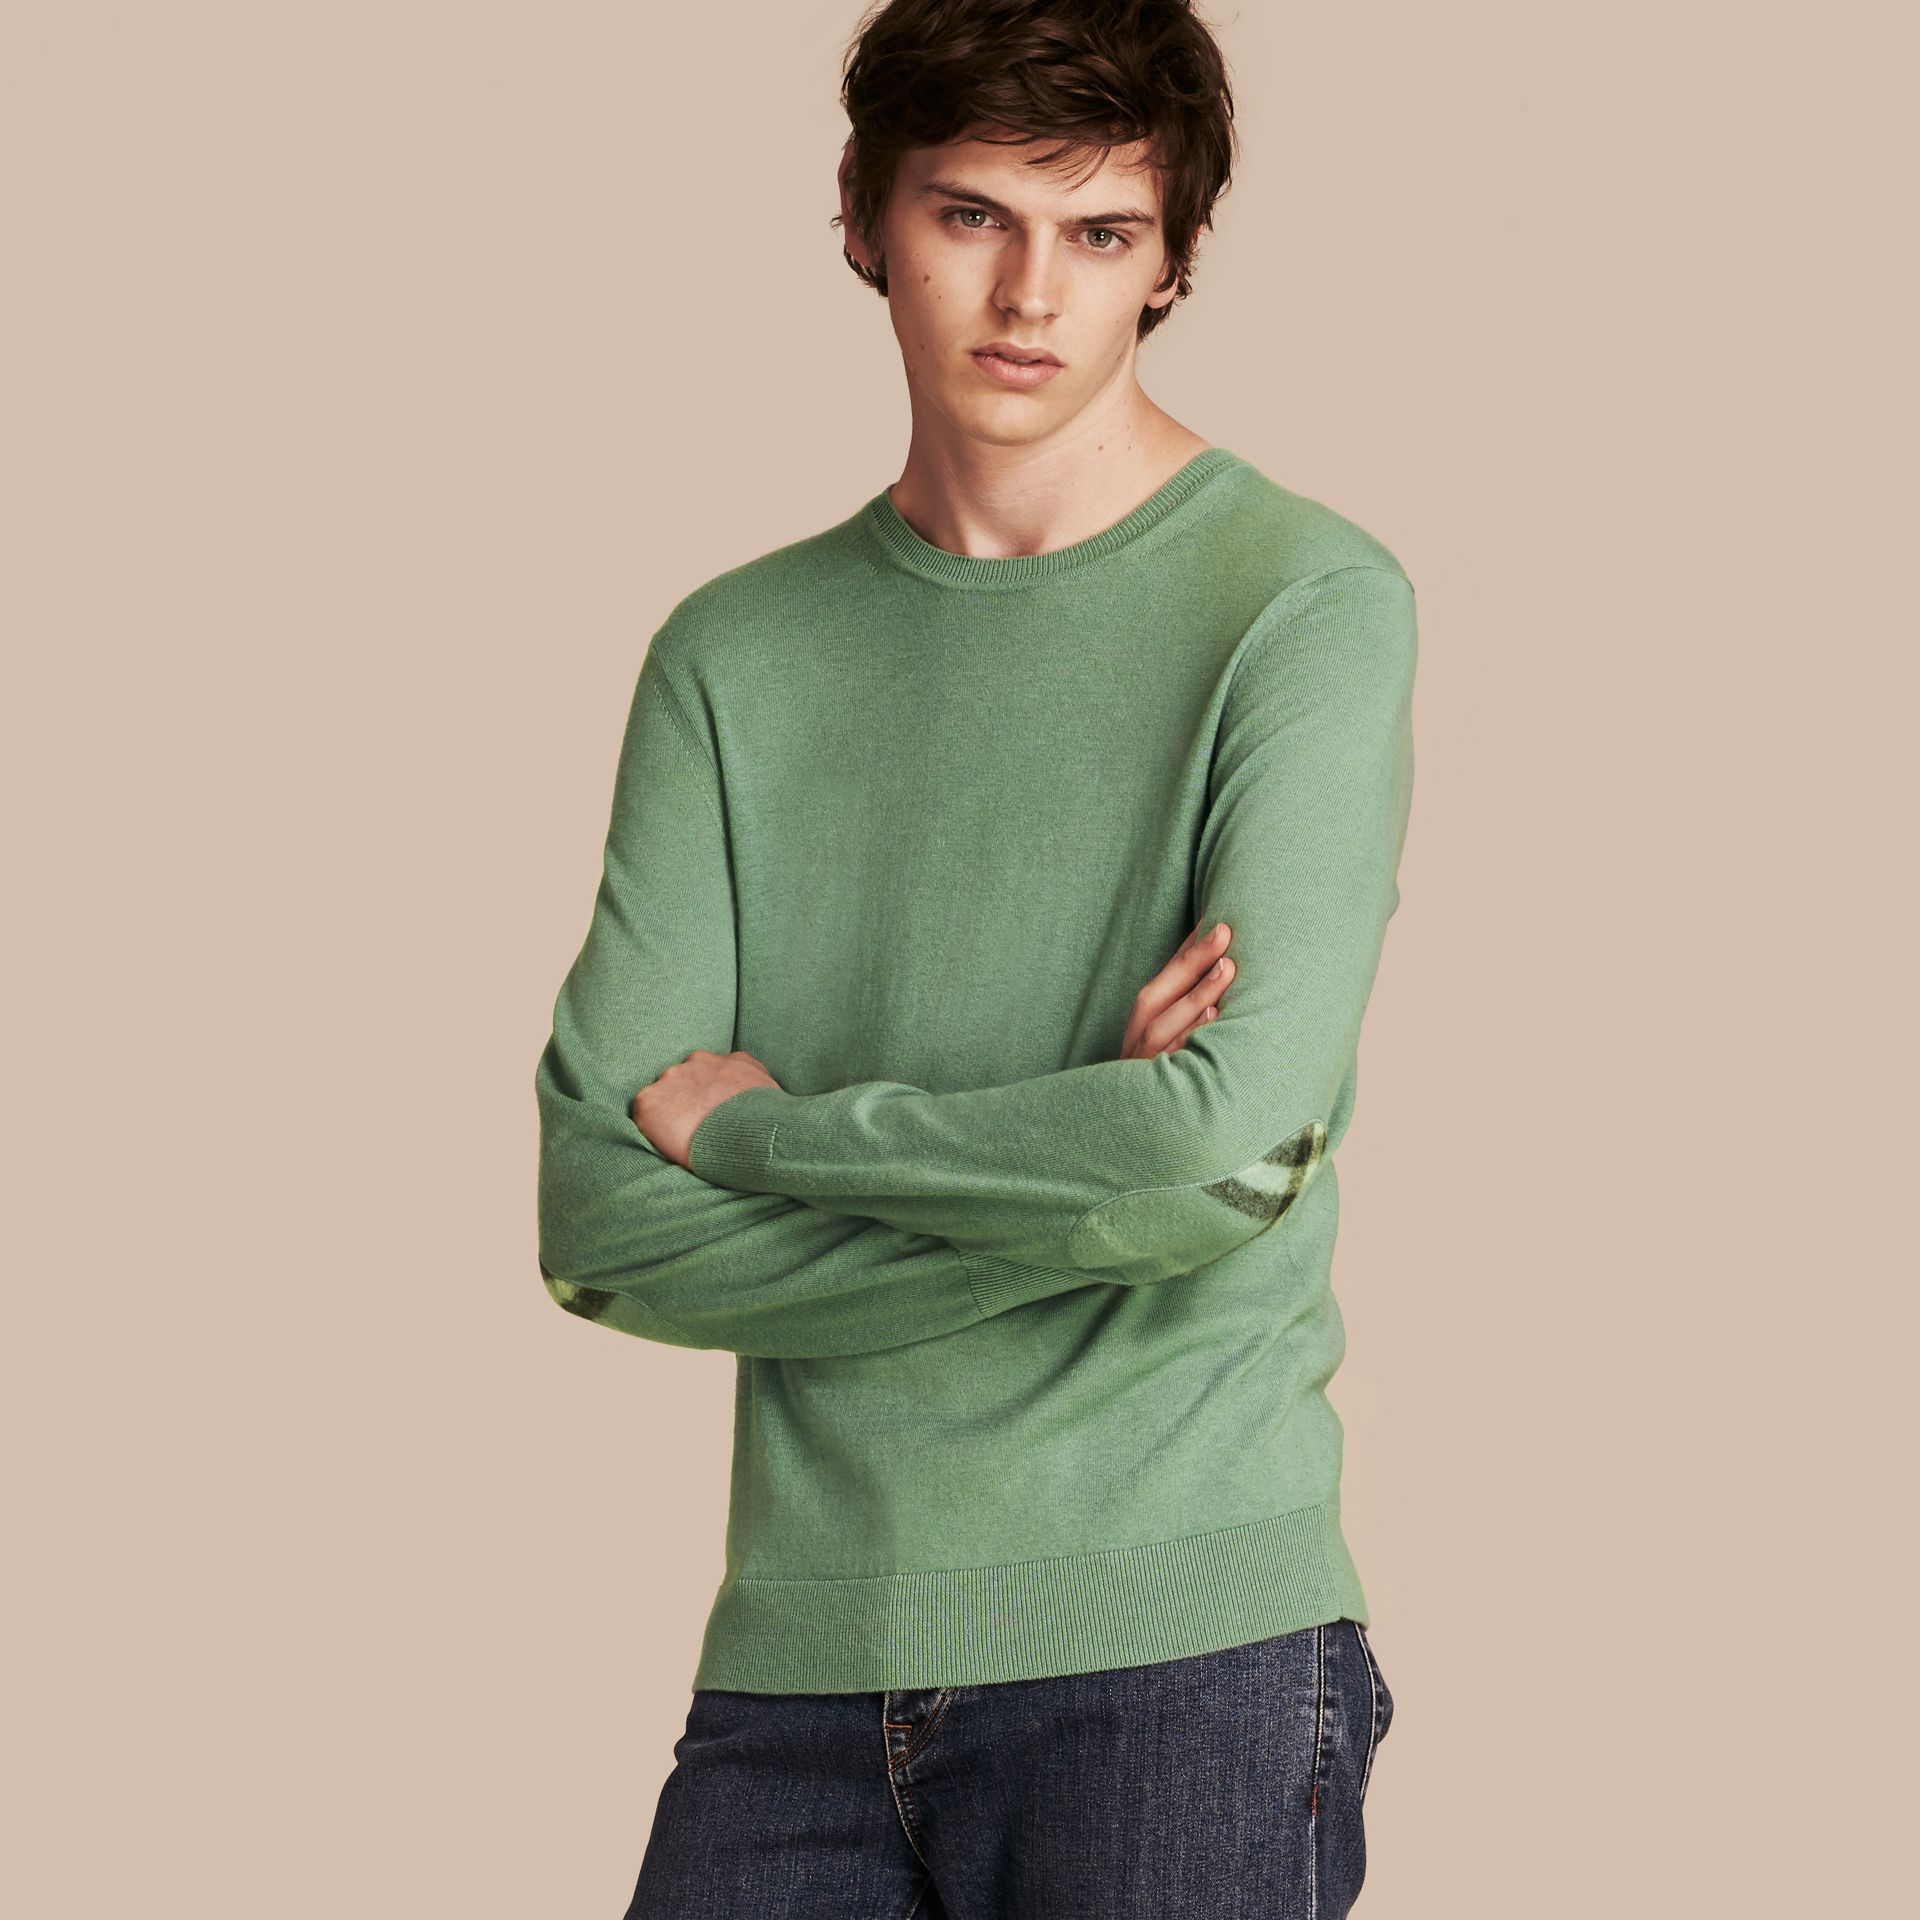 Eucalyptus green Check Trim Cashmere Cotton Sweater Eucalyptus Green - gallery image 1